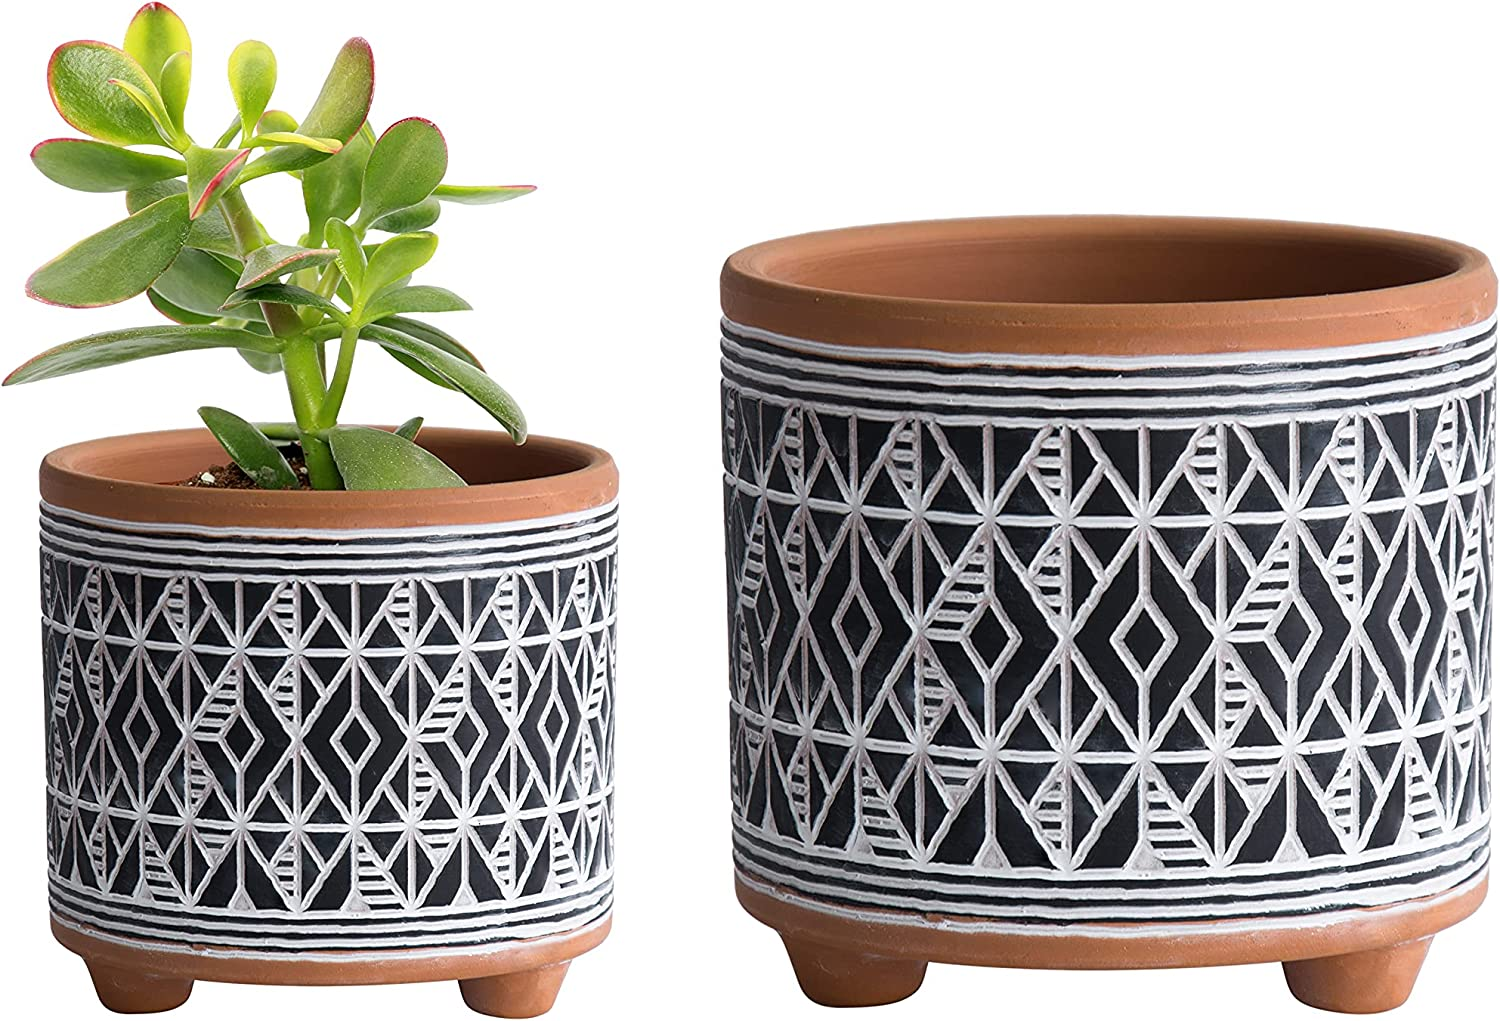 Set of 2 Terracotta Planter Pots 6.4 Diamond 4.4 Be super welcome discount Inch P